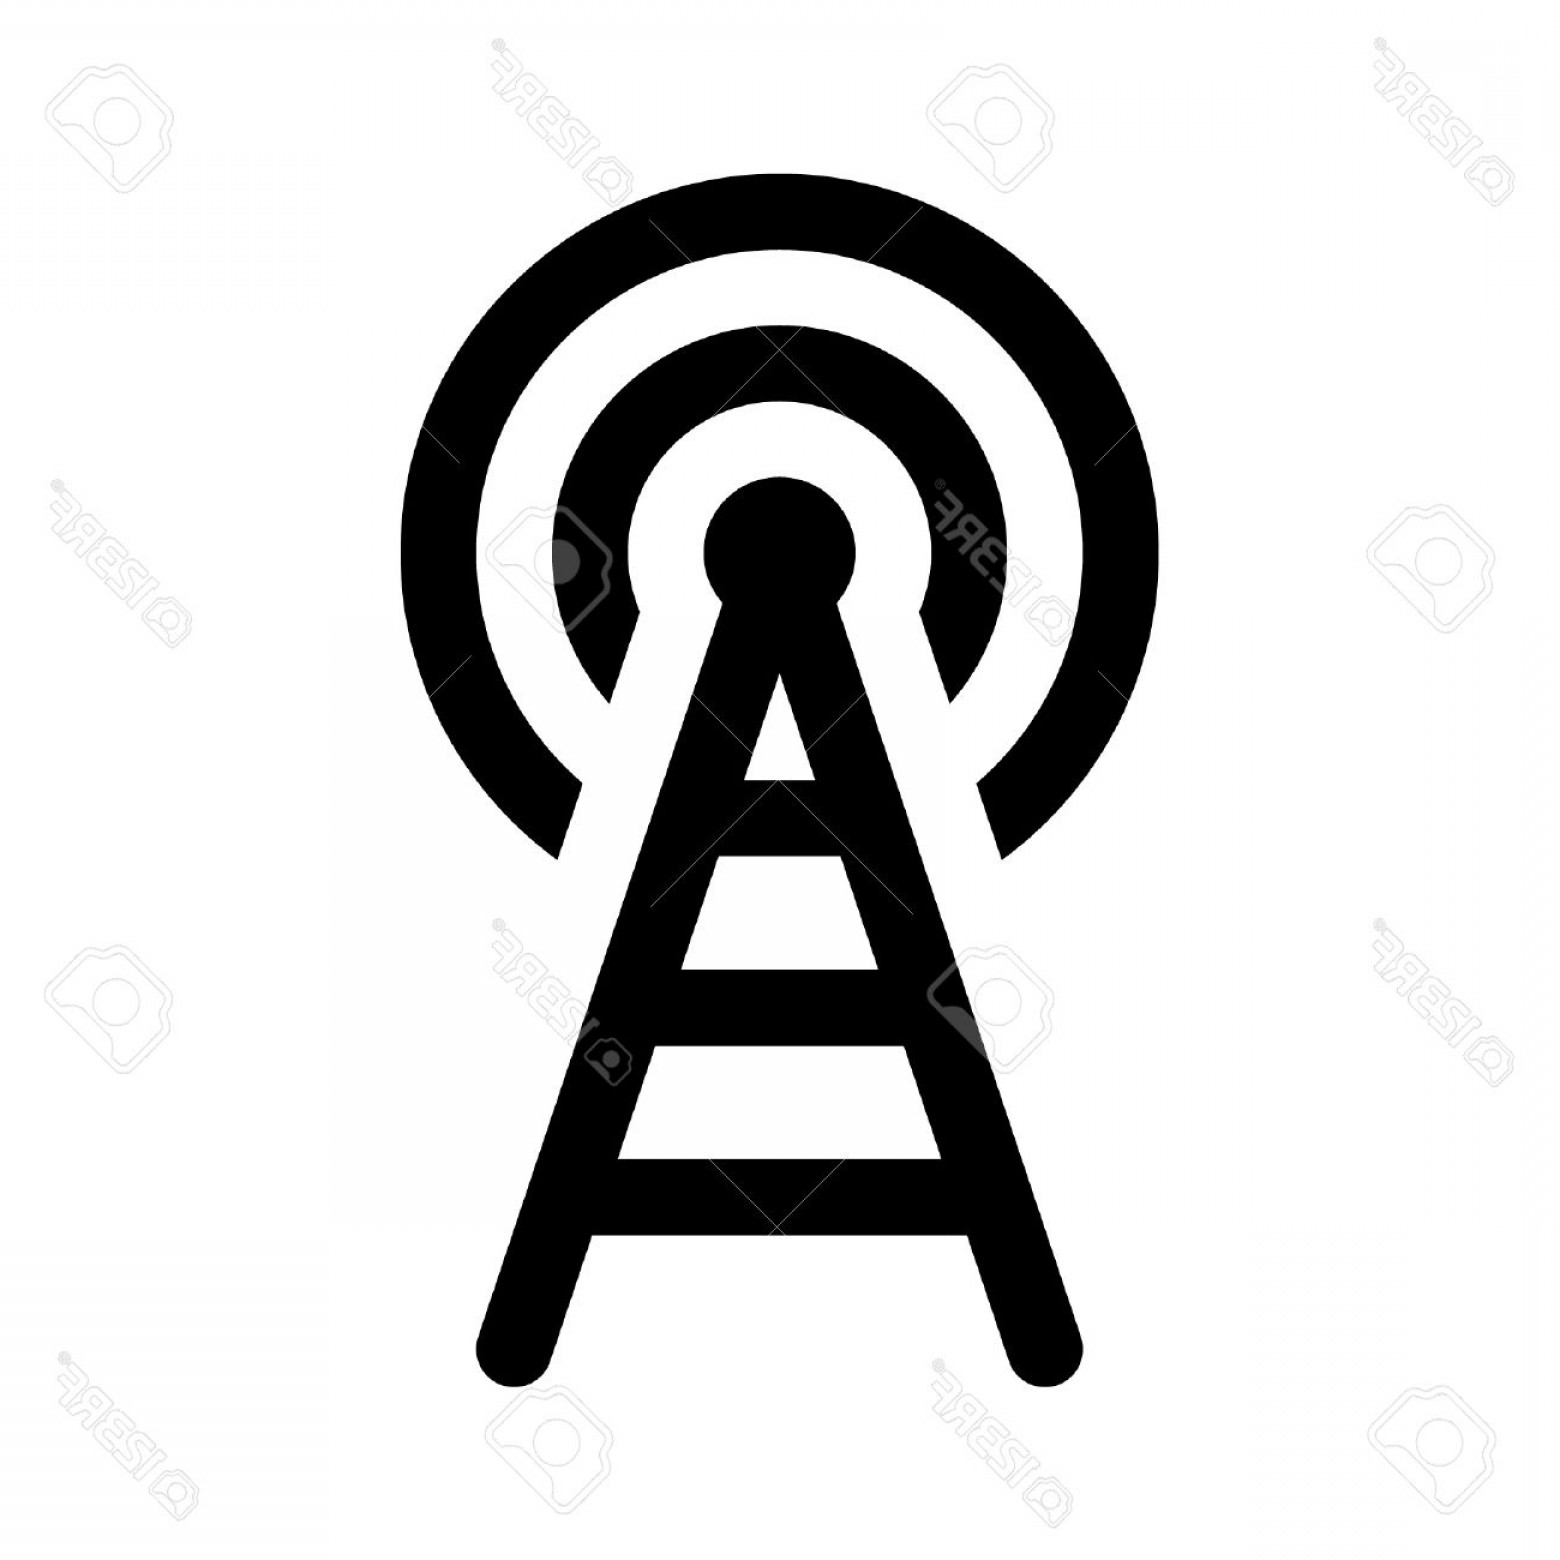 Wifi Symbol Clip Art Vector: Photostock Vector Wifi Wireless Tower Line Art Icon For Apps And Websites